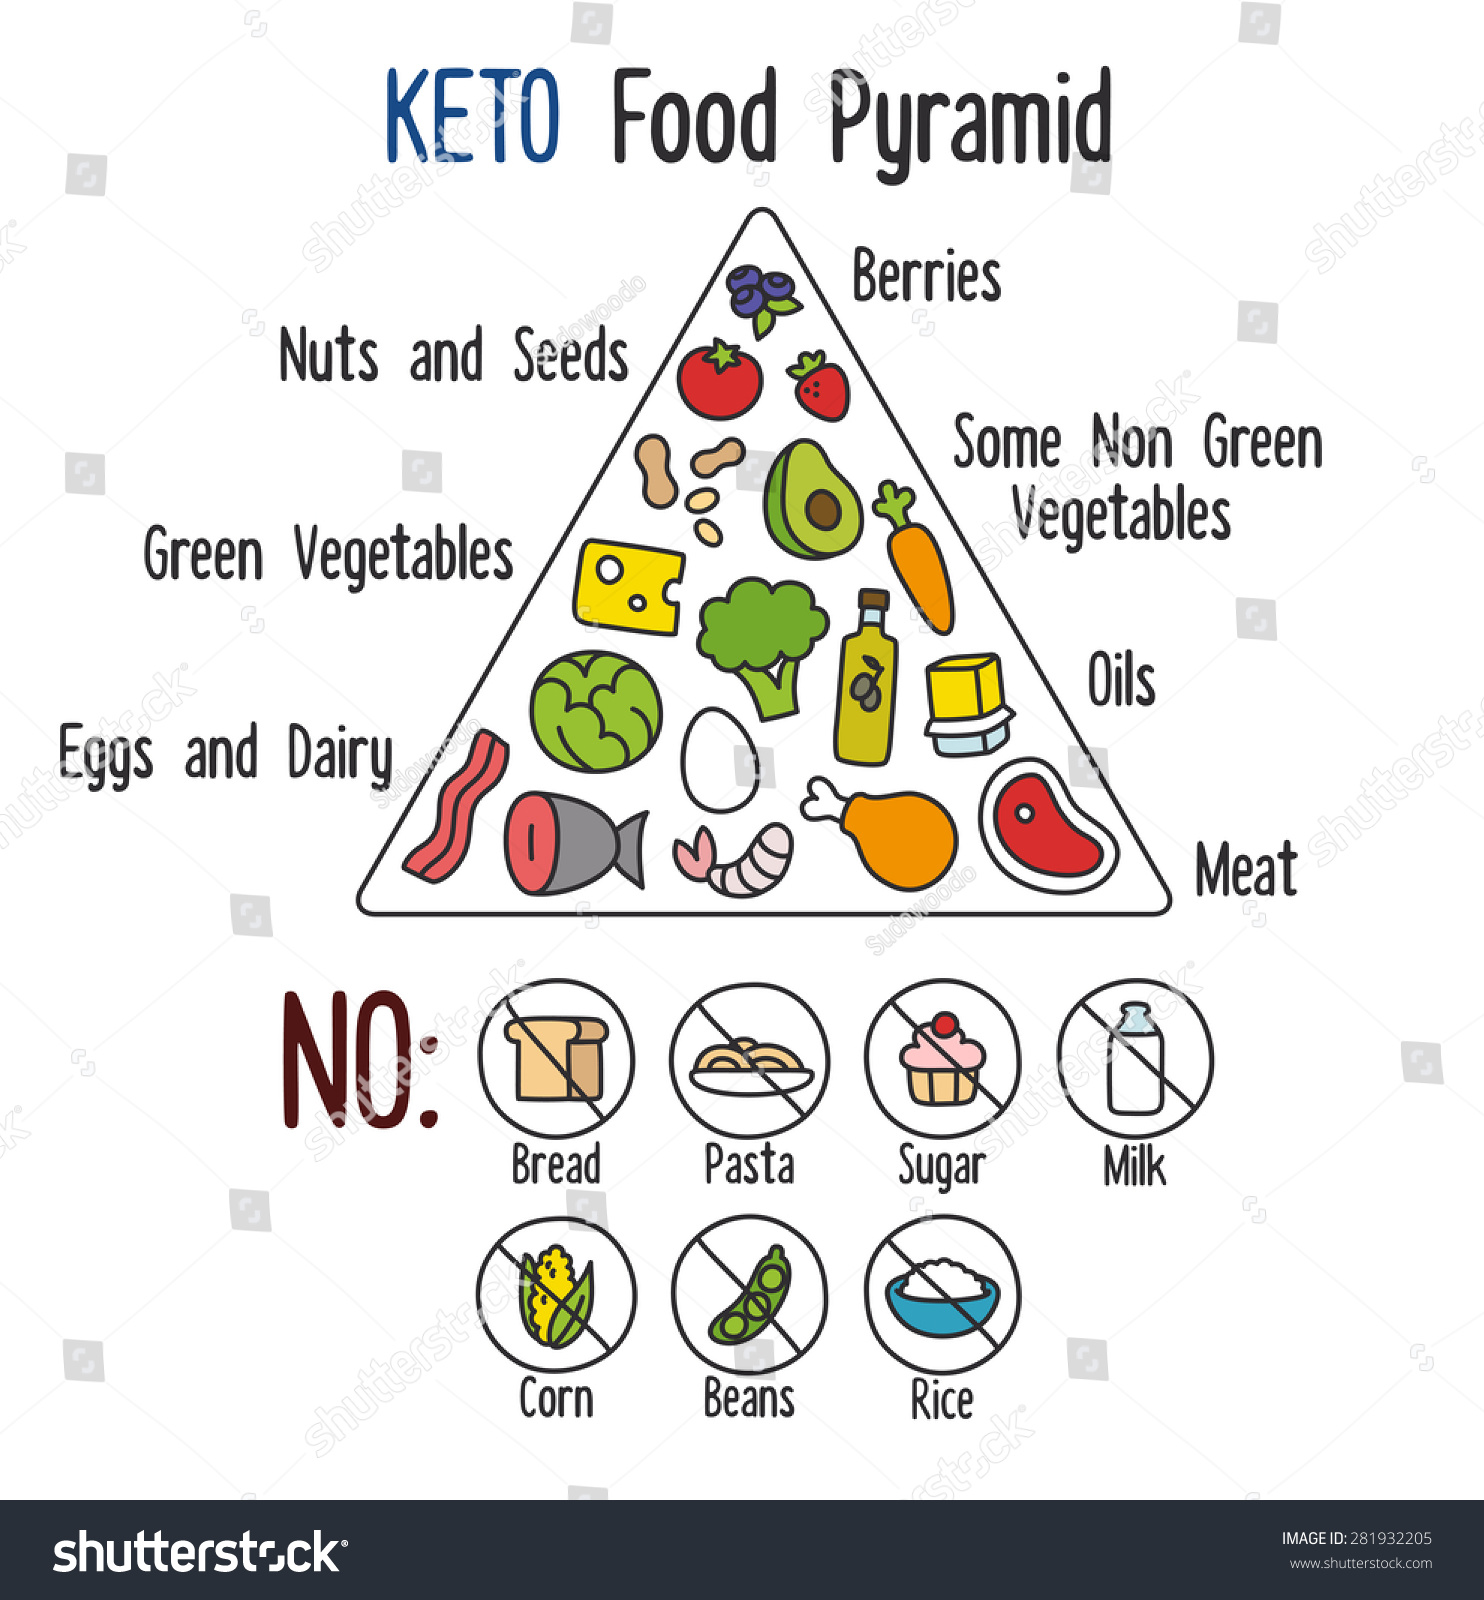 Nutrition Infographics Food Pyramid Diagram Ketogenic Stock Vector 281932205 - Shutterstock